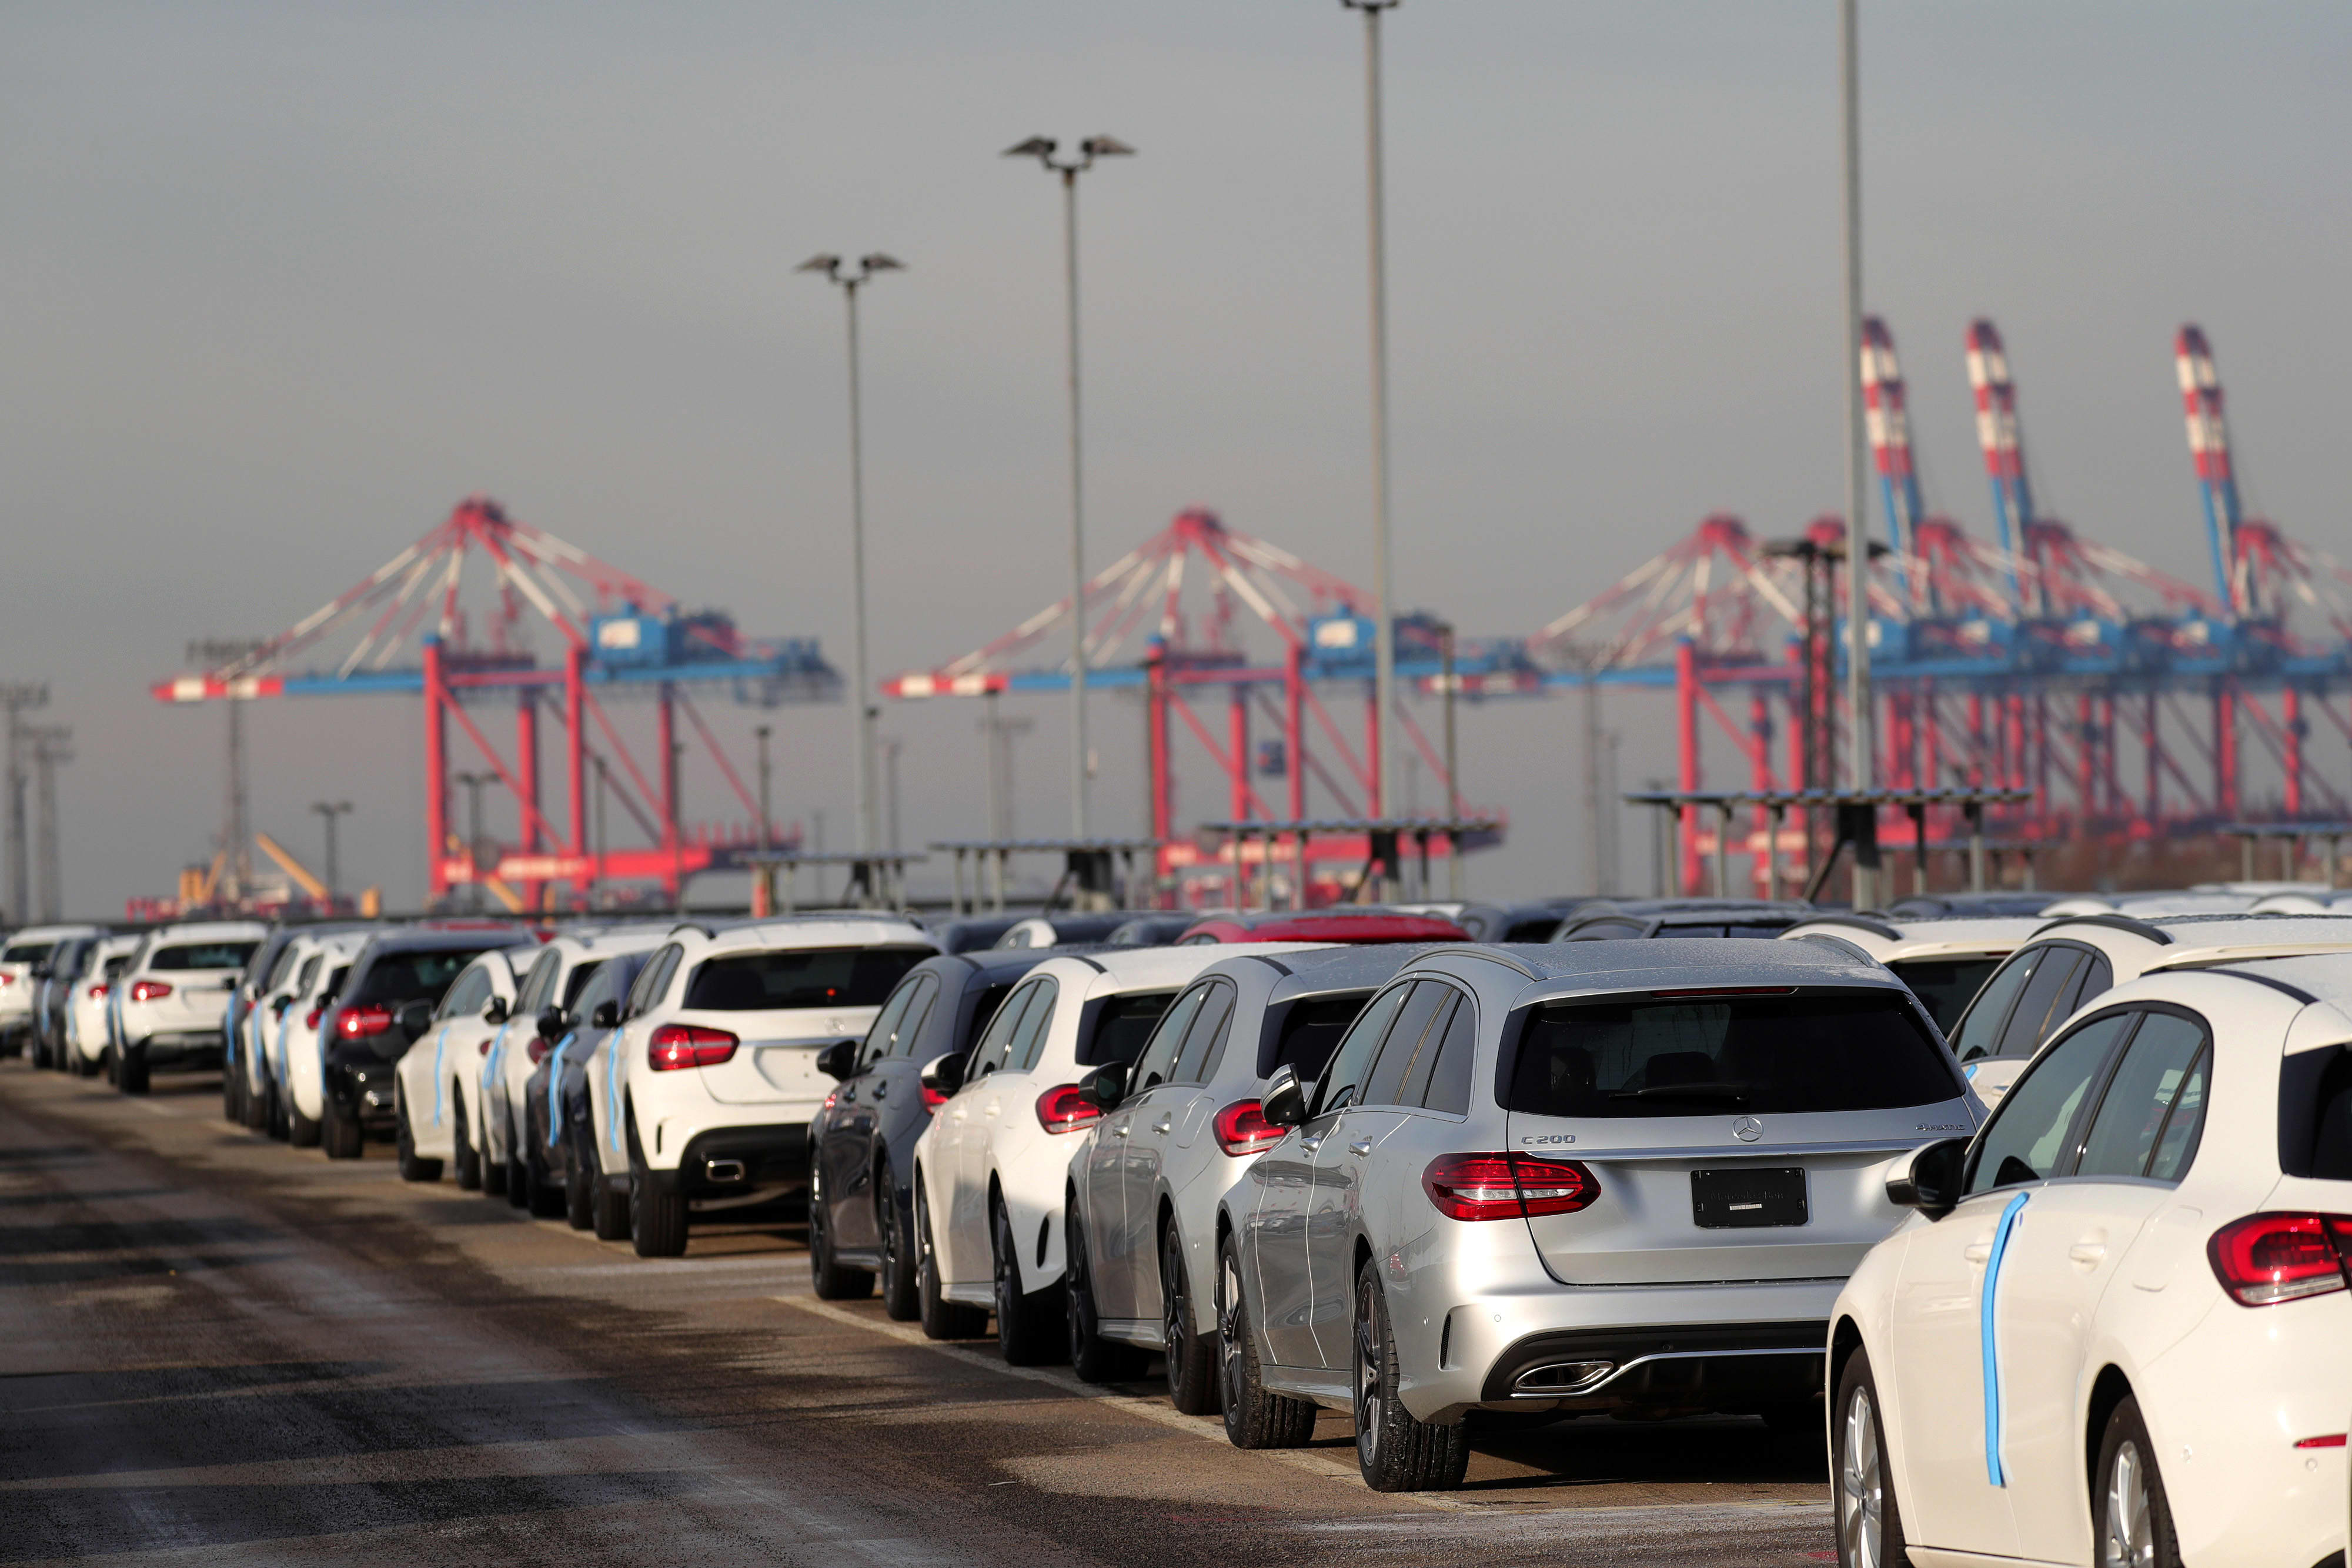 New Mercedes-Benz AG automobiles sit on the dockside ahead of export from the BLG Logistics Group AG terminal at the Port of Bremerhaven in Bremerhaven, Germany, on Tuesday, Jan. 22, 2019.